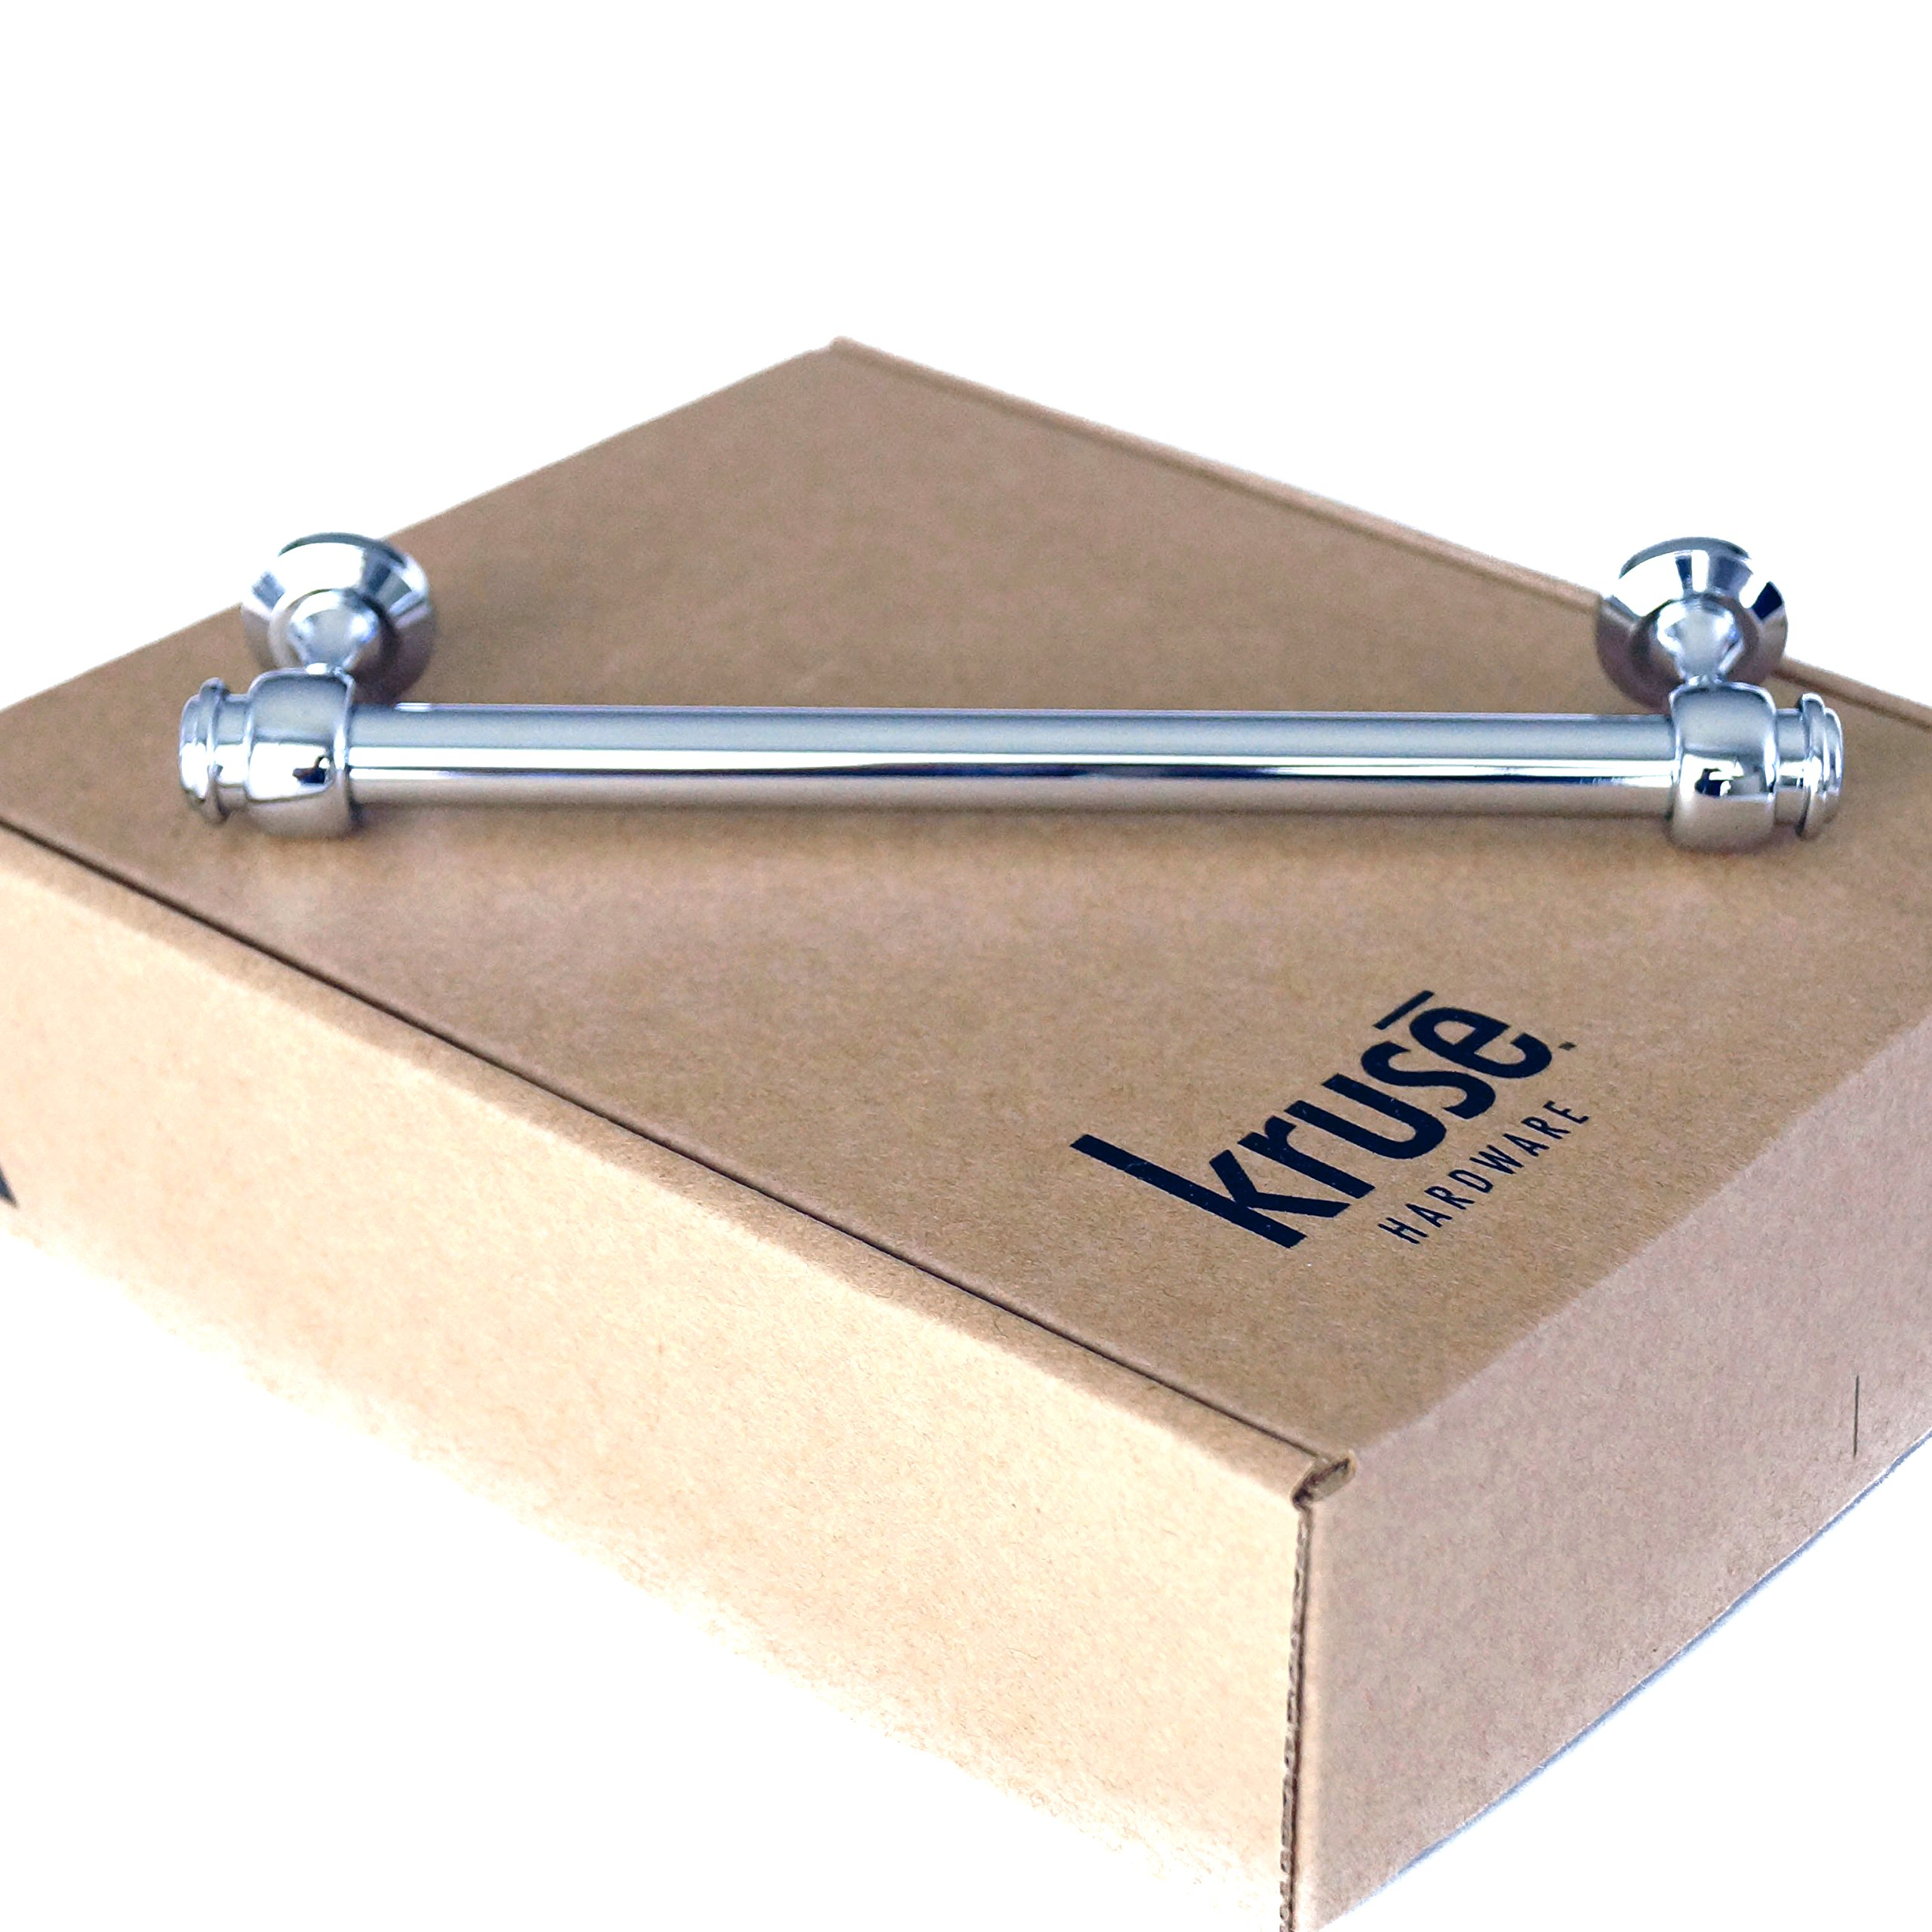 (Qty 10 per Package) Kruse Hardware - Milano Door and Drawer Pulls - 6in Center-to-Center, Polished Chrome